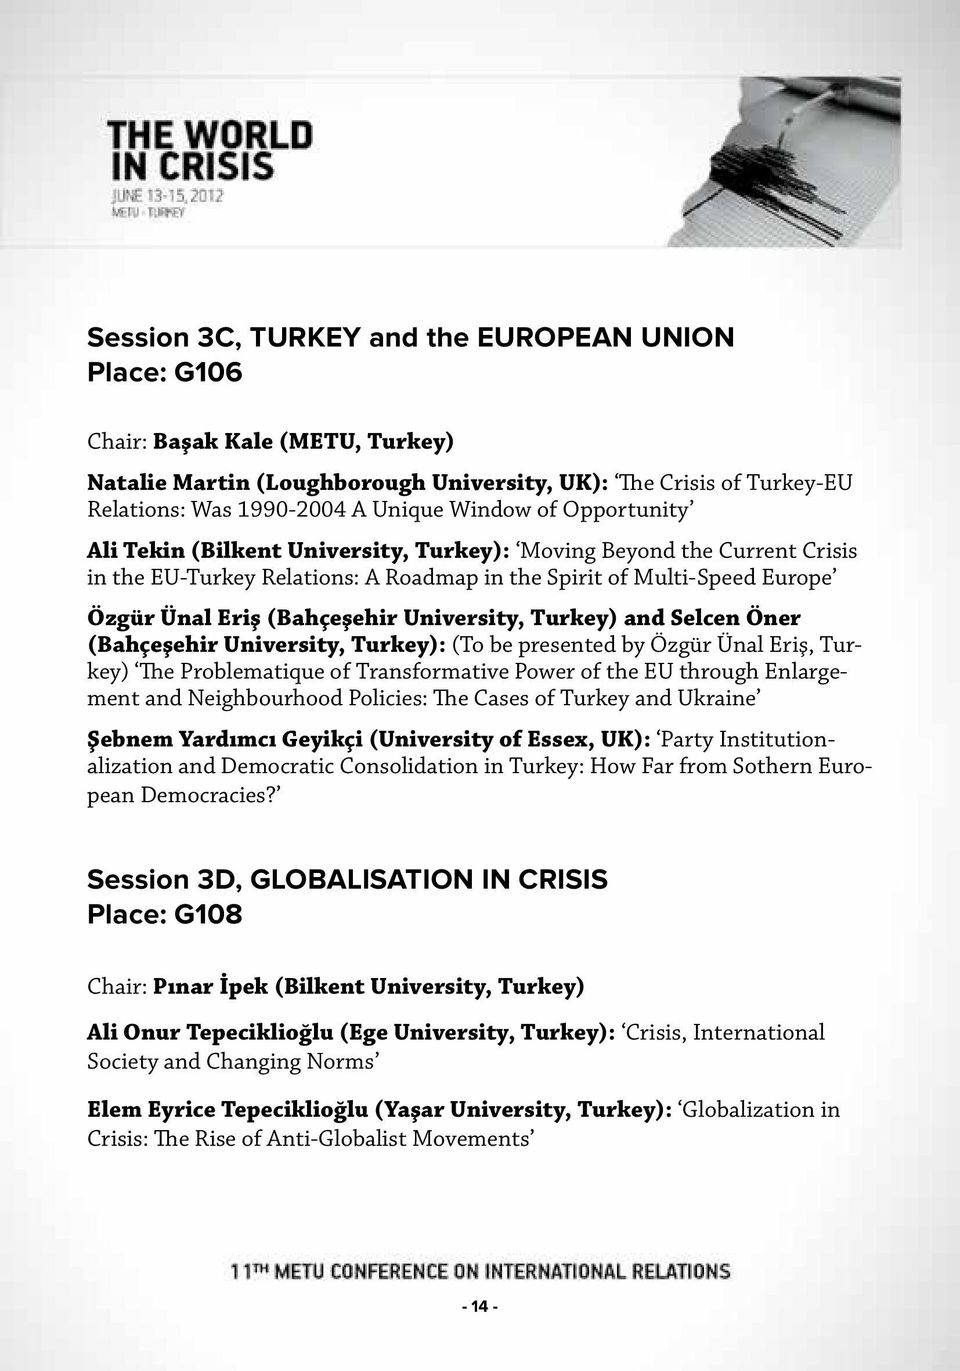 University, Turkey) and Selcen Öner (Bahçeşehir University, Turkey): (To be presented by Özgür Ünal Eriş, Turkey) The Problematique of Transformative Power of the EU through Enlargement and